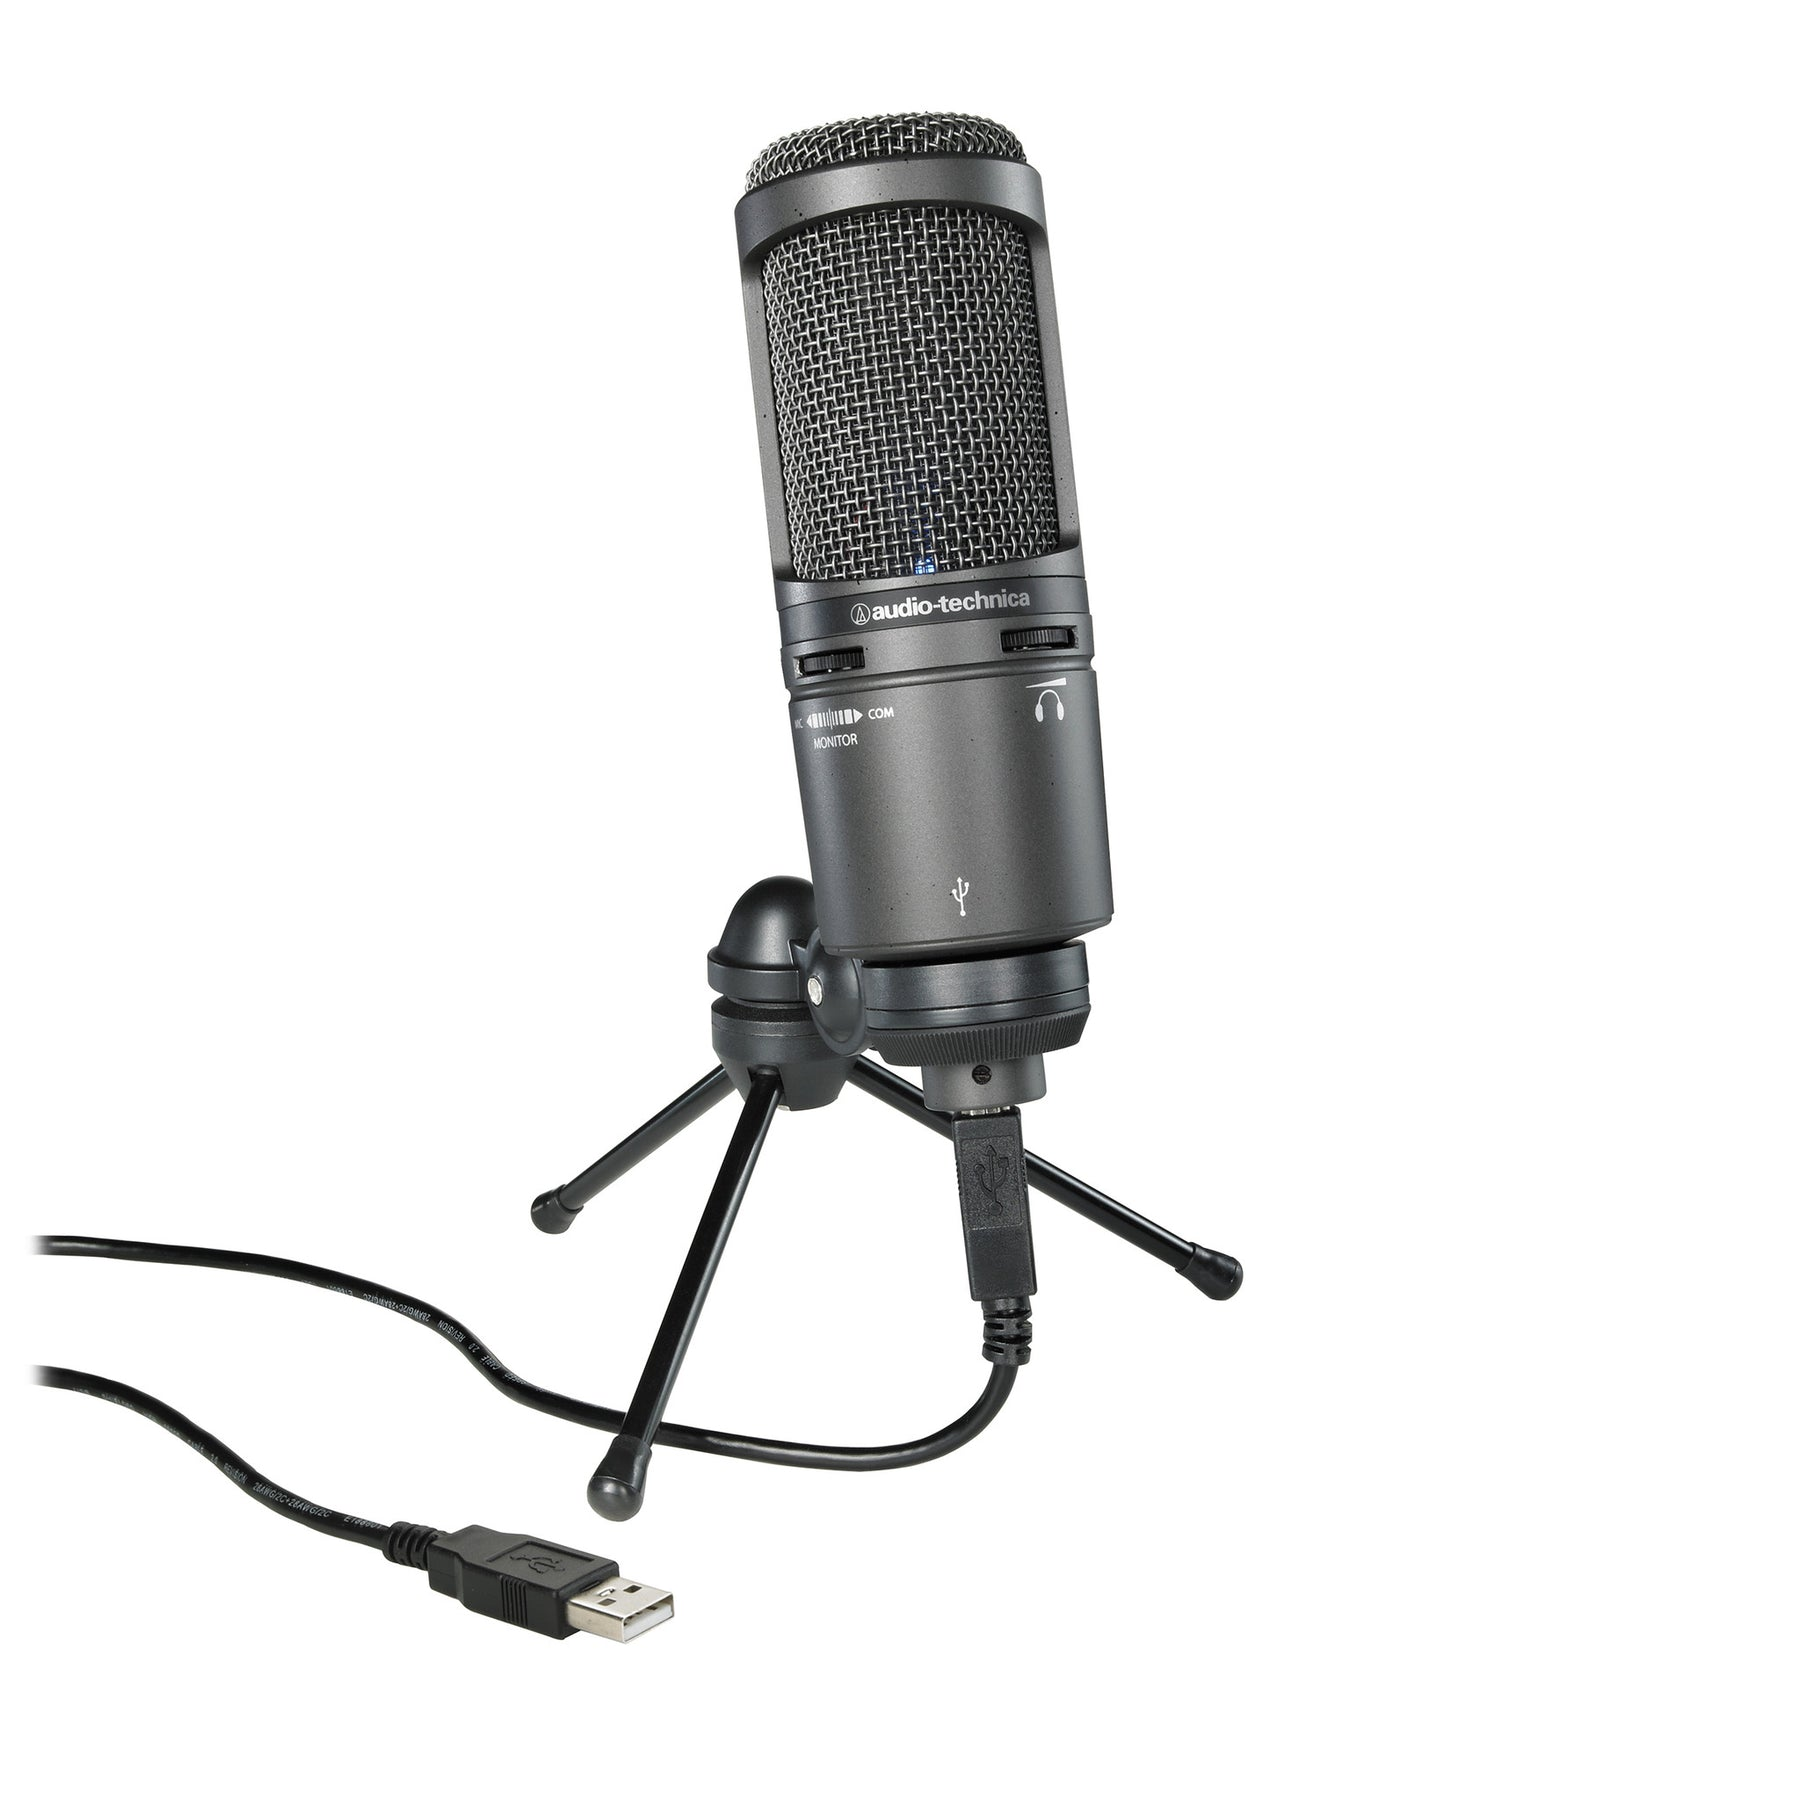 audio technica at2020usb microphone with usb output. Black Bedroom Furniture Sets. Home Design Ideas